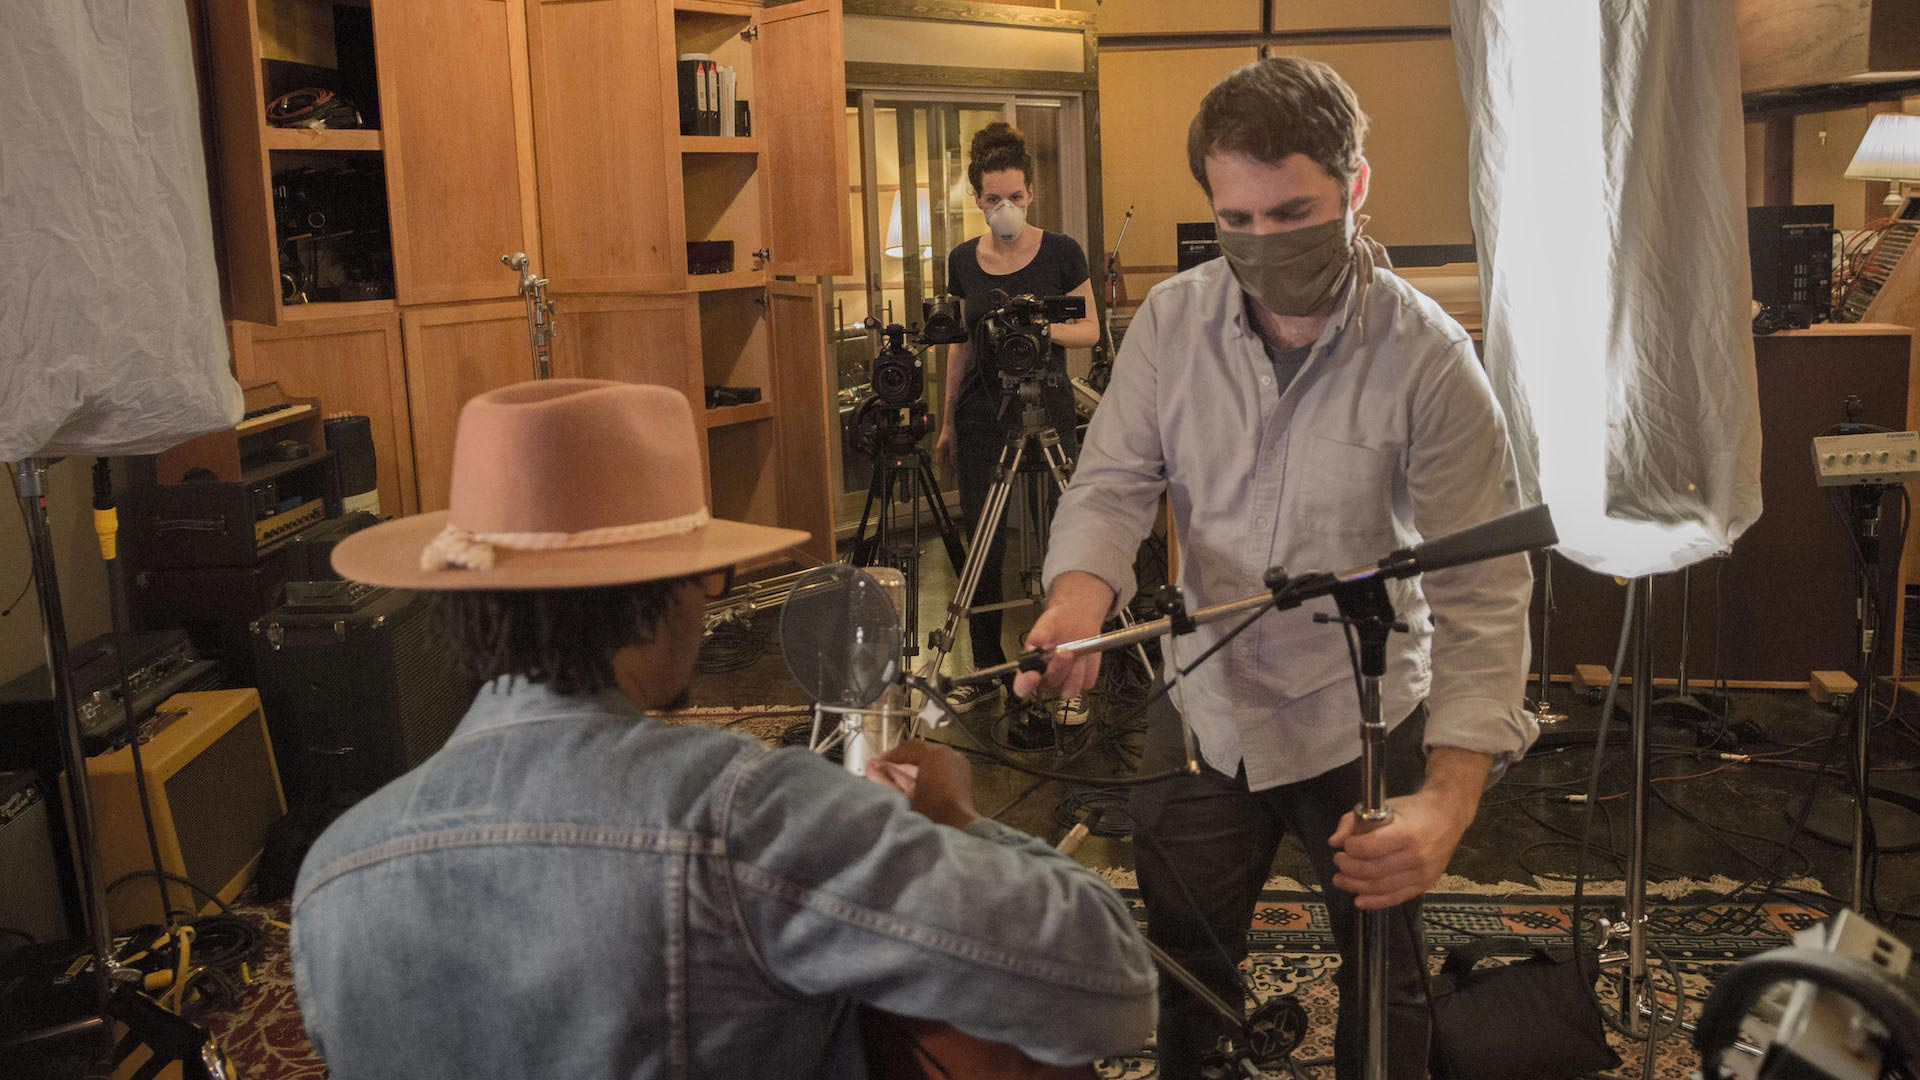 a sound engineer adjusts a microphone for a musician while a camera operator adjusts a video camera in the background inside a sound studio filming session